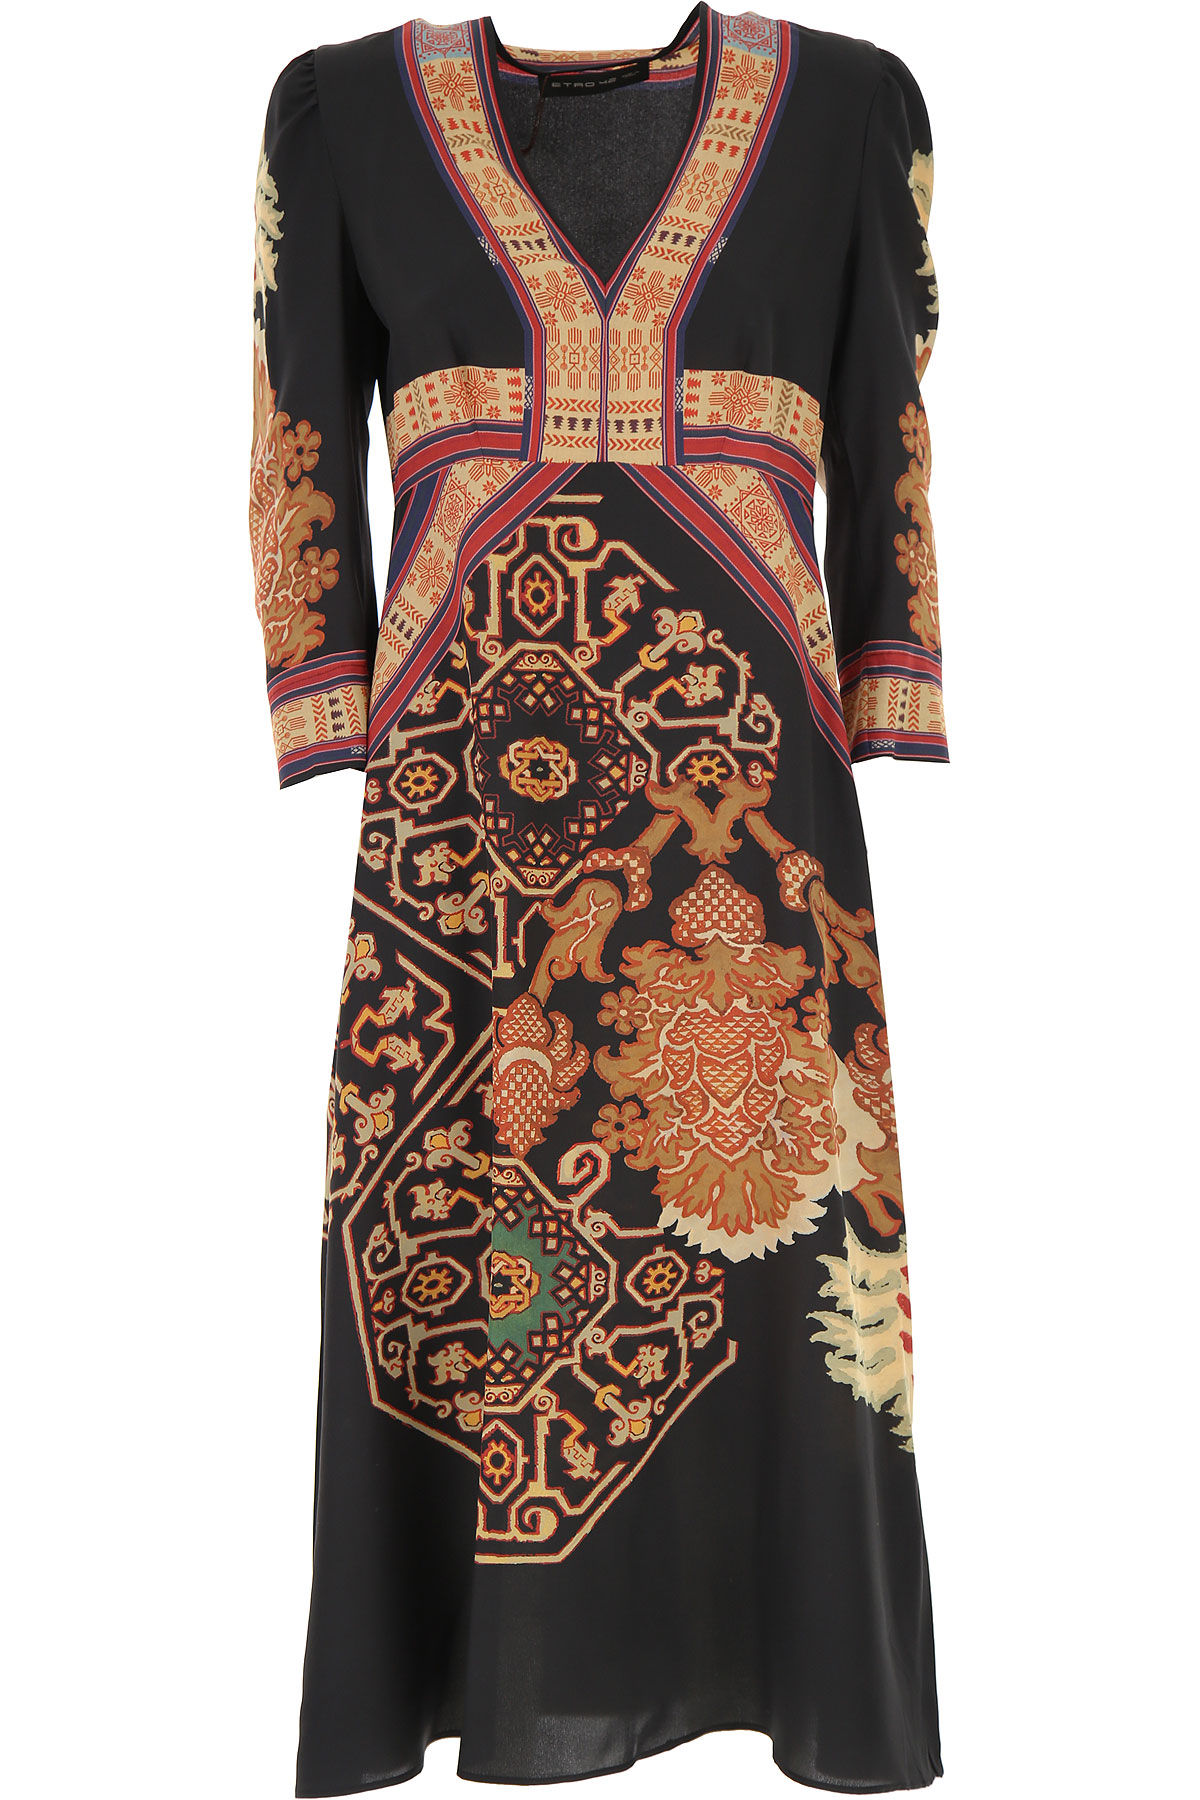 Etro Dress for Women, Evening Cocktail Party On Sale, Black, Silk, 2019, 10 6 8